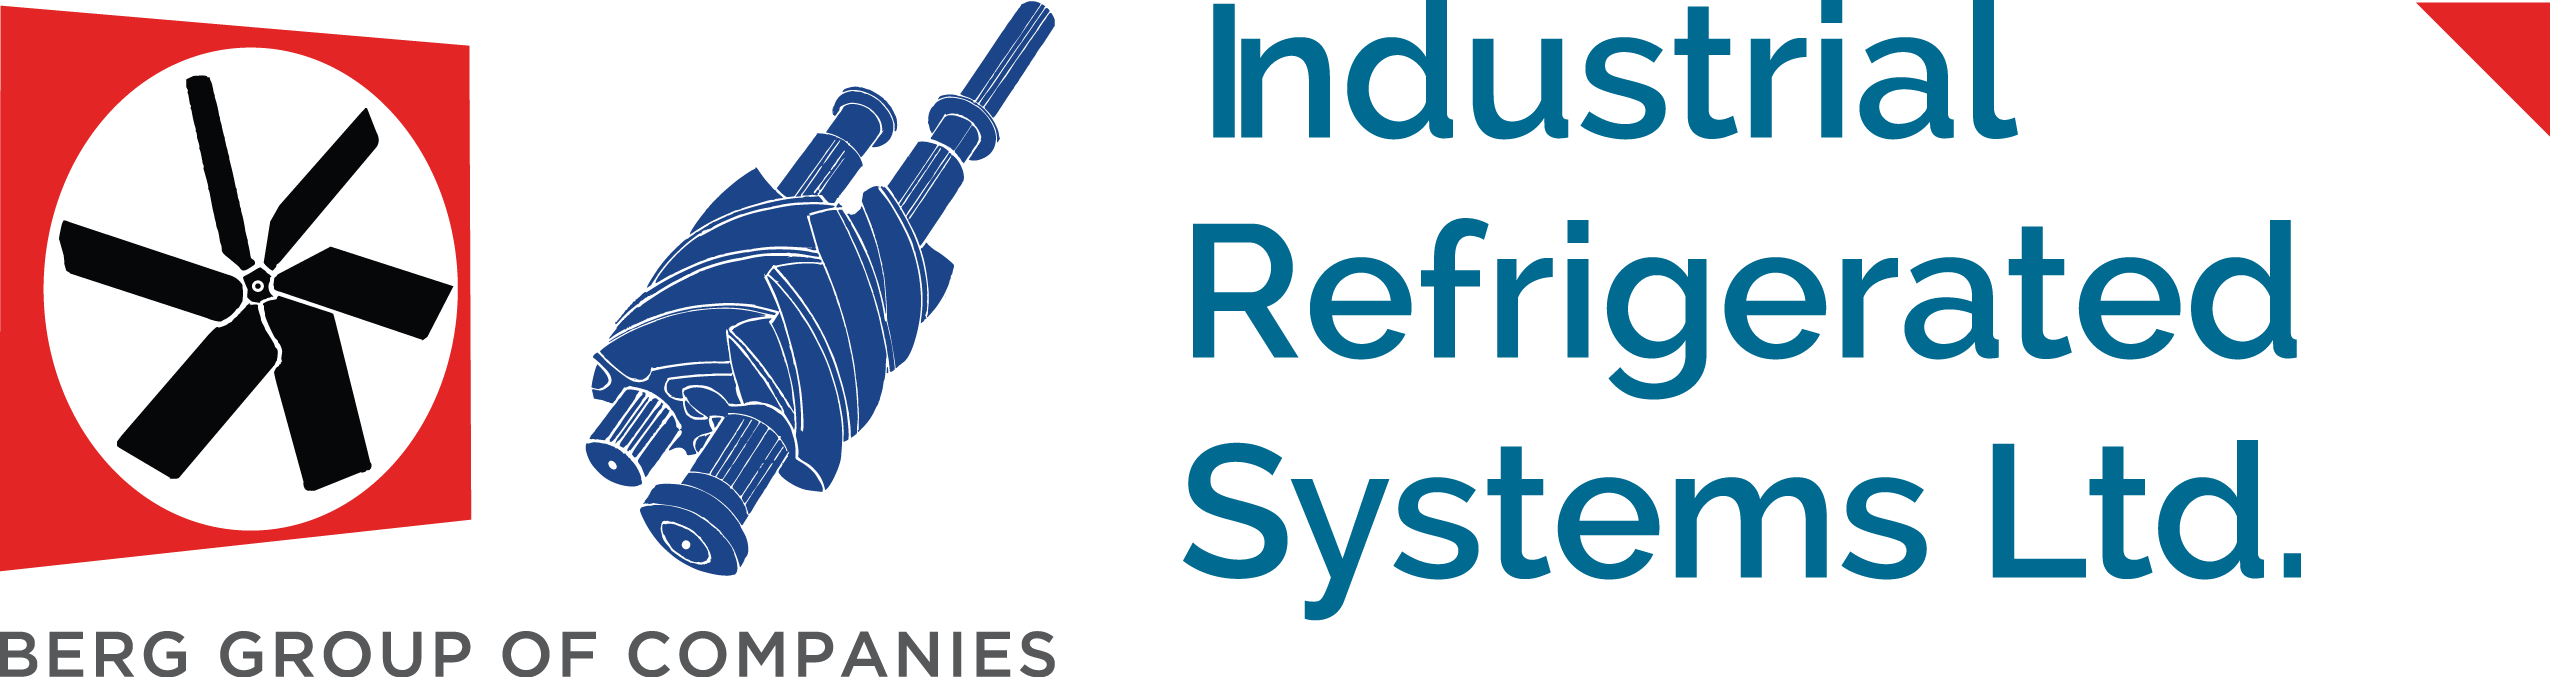 Refrigeration Principles And How A System Works Berg Request To Exit Wiring Diagram Industrial Refrigerated Systems Logo